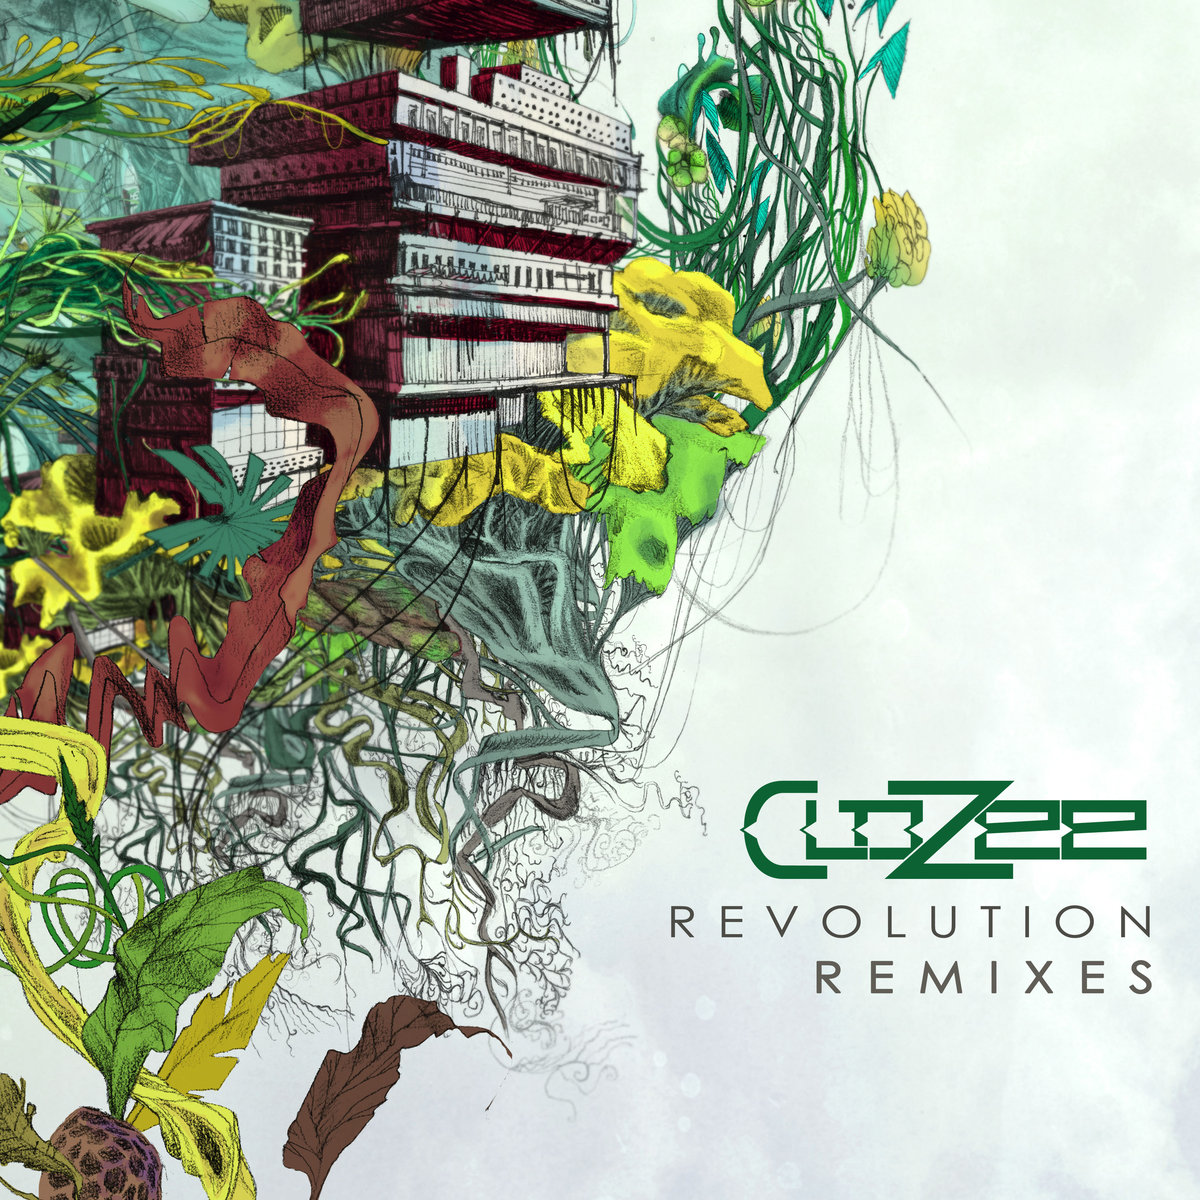 CloZee - Sankar's Lake (Igama Remix) @ 'Revolution Remixes' album (chill, downtempo)